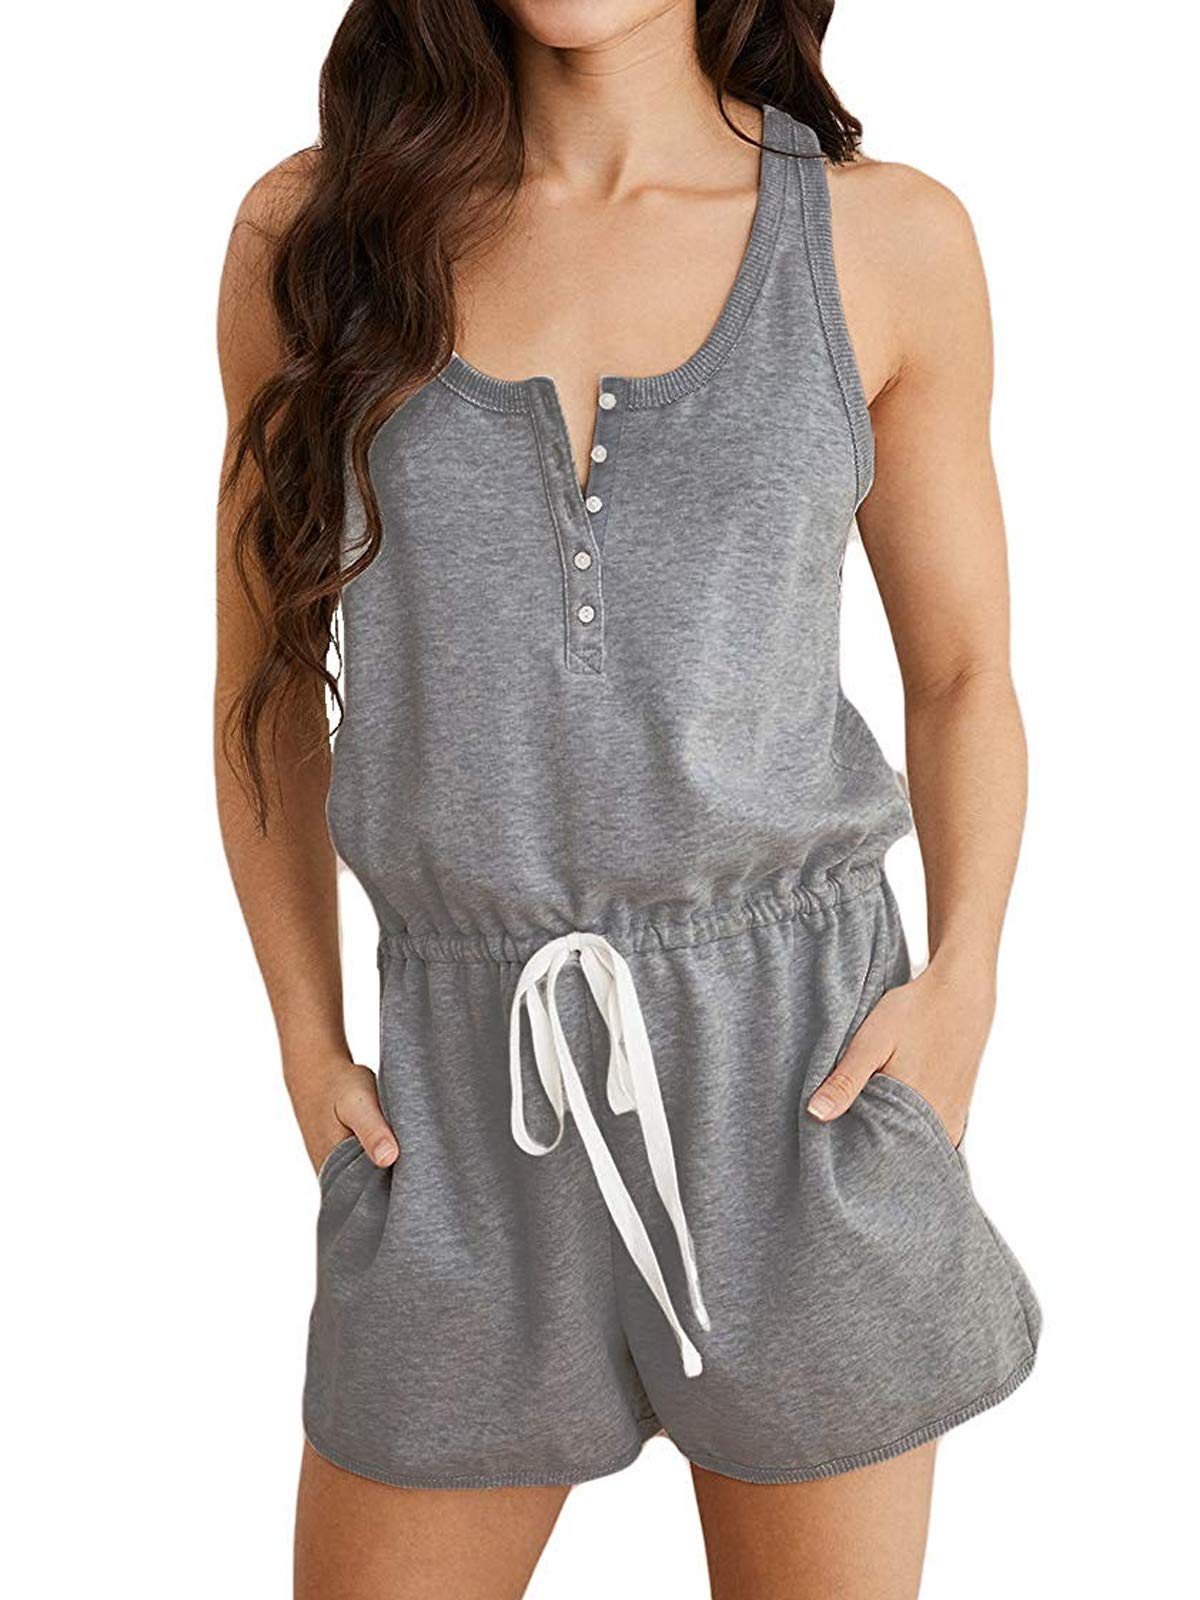 MILLCHIC Women's Jumpsuits Sleeveless Button Down Elastic Waisted Short Rompers with Pockets